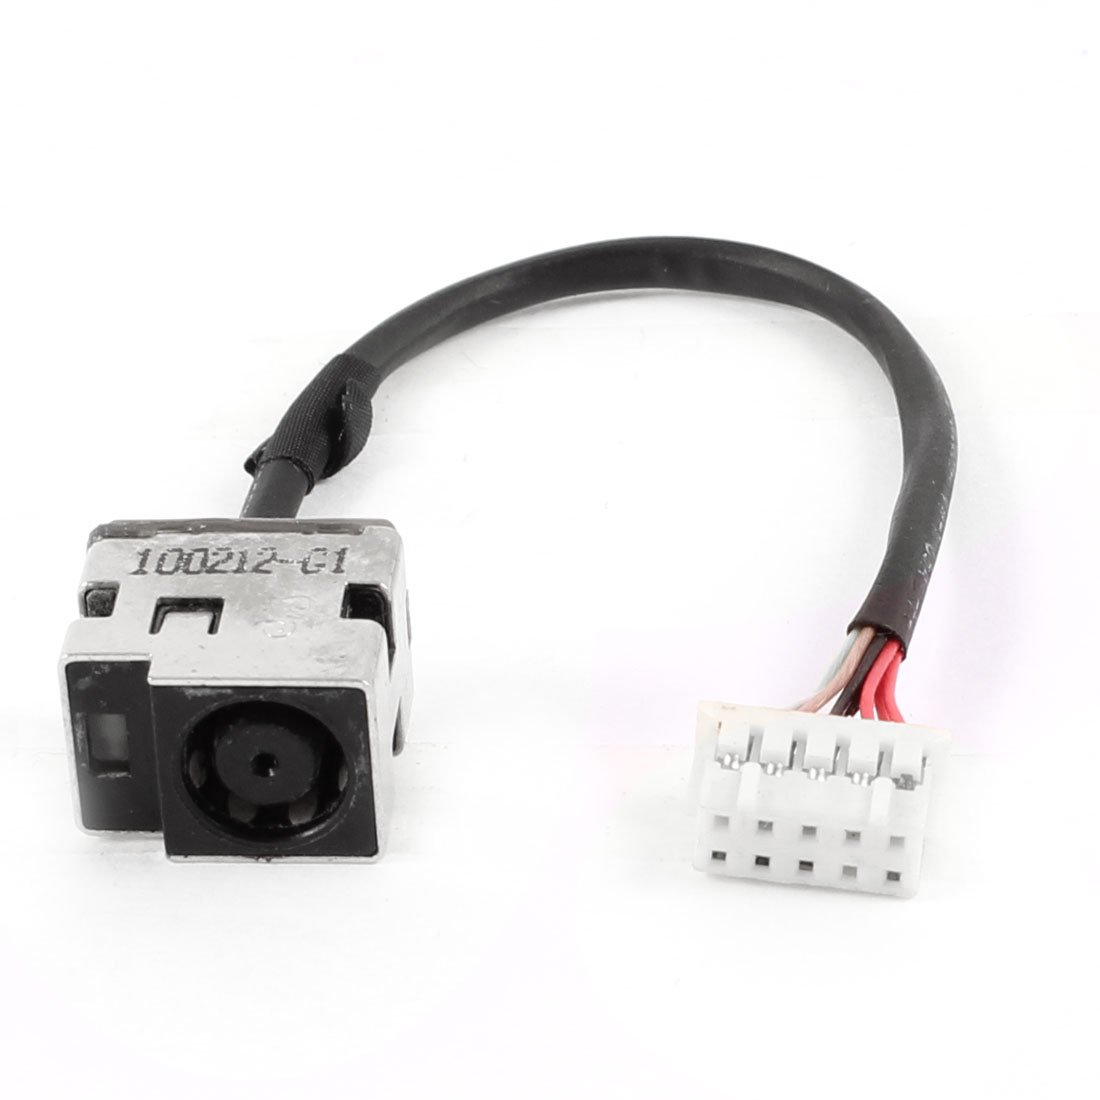 Laptop DC Power Jack Socket Cable Wire Harness PJ258 for HP Pavilion DV6-3000